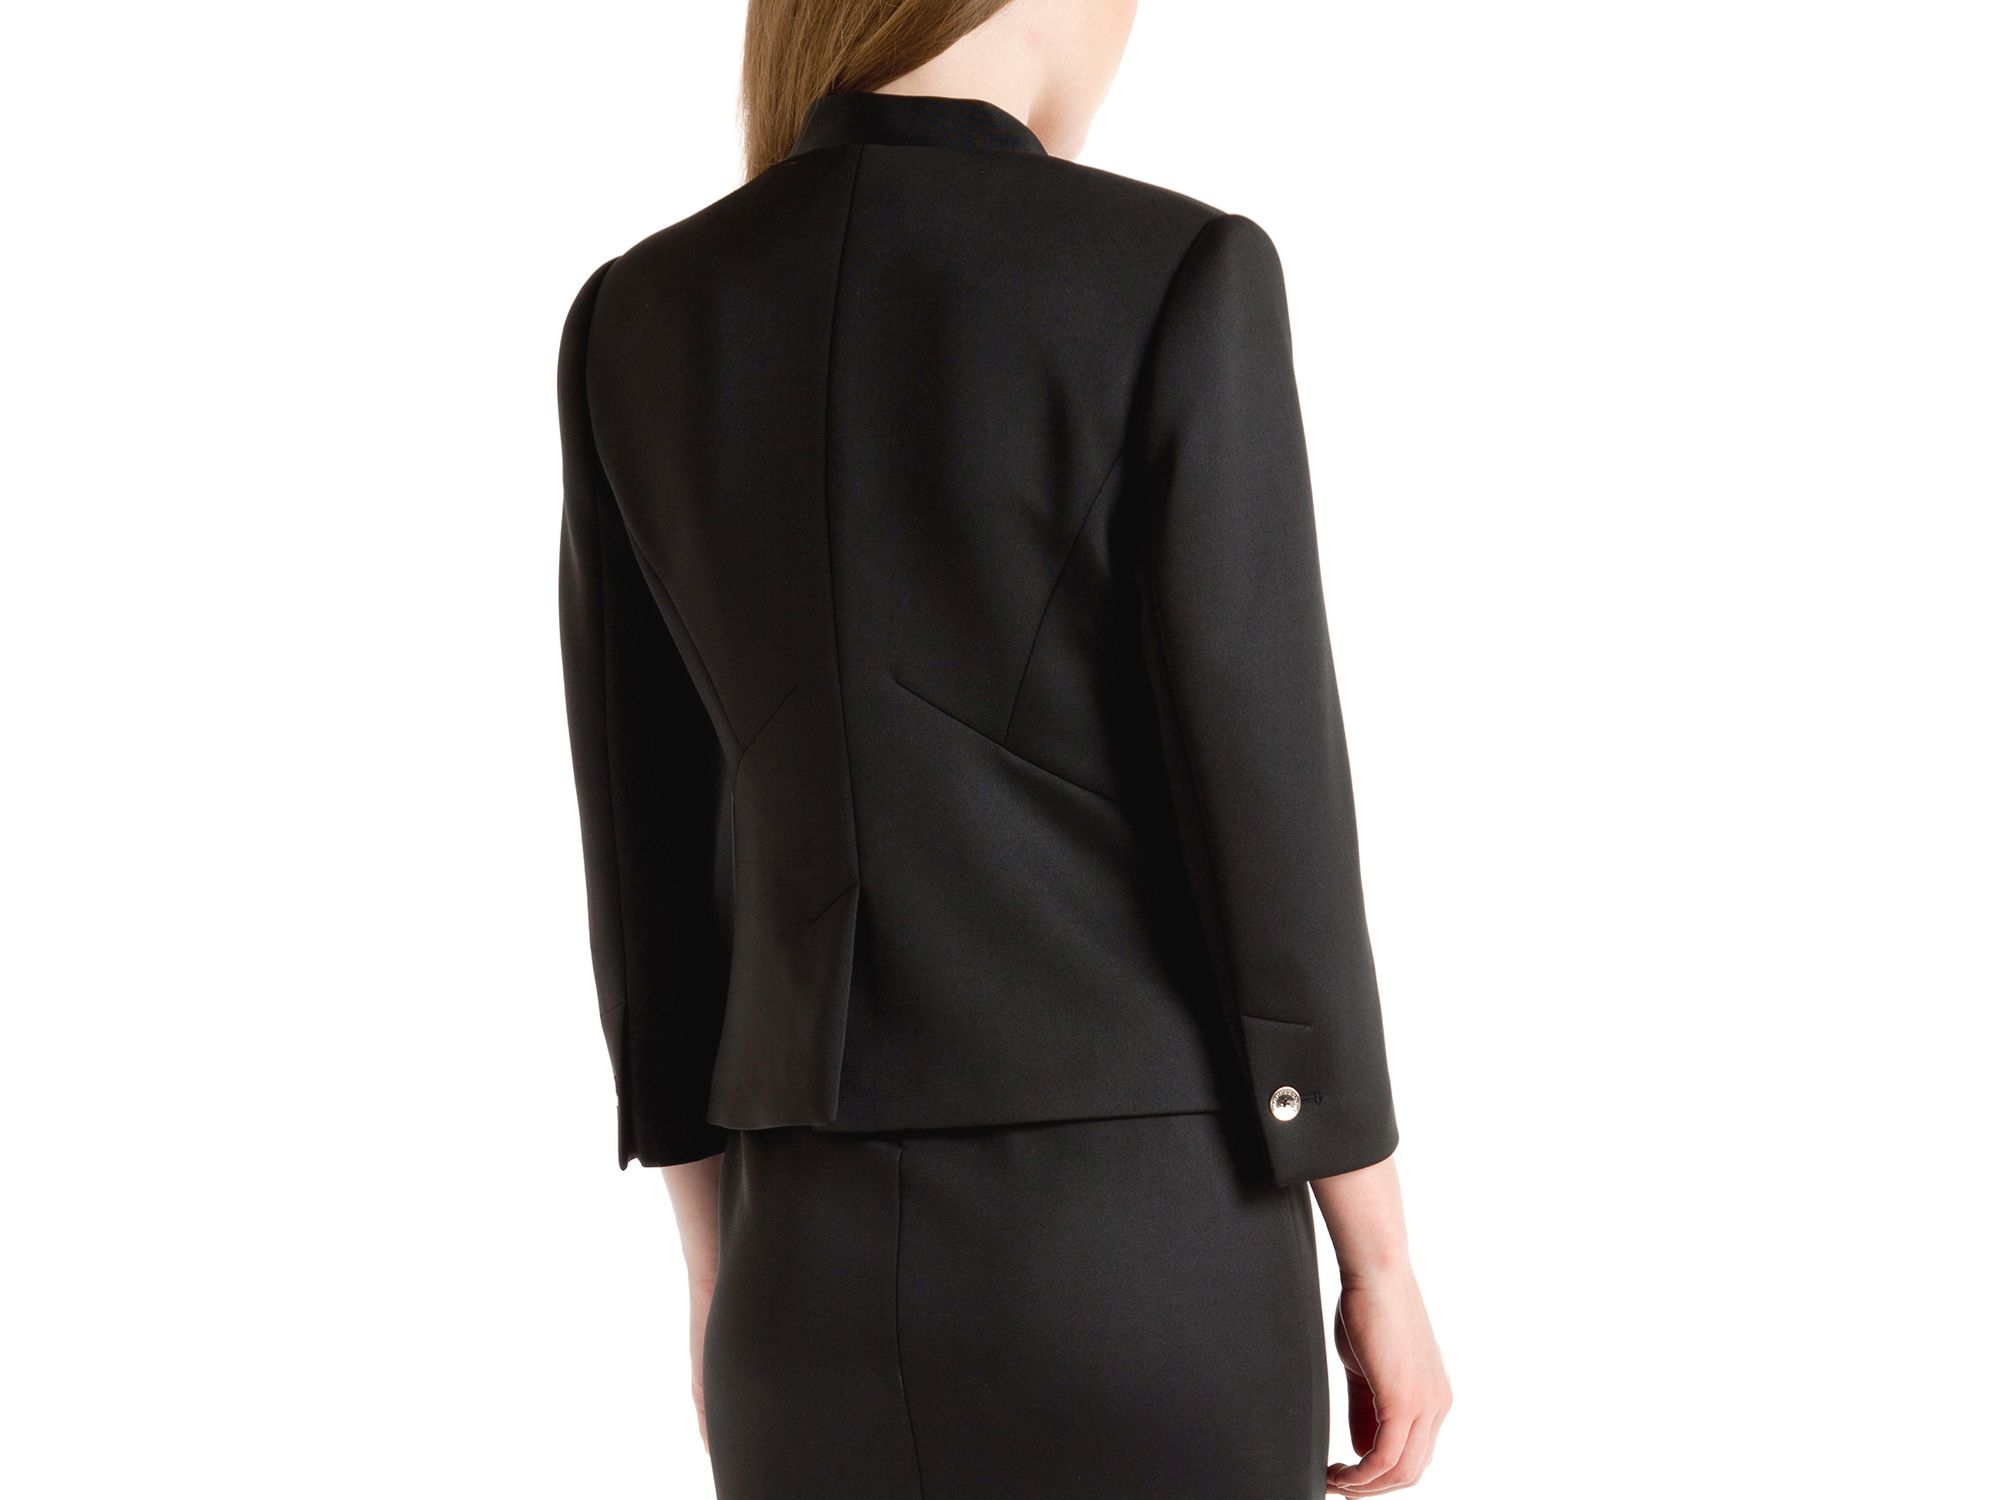 4b4f7f4c2929d Gallery. Previously sold at  Bloomingdale s · Women s Suit Jackets ...